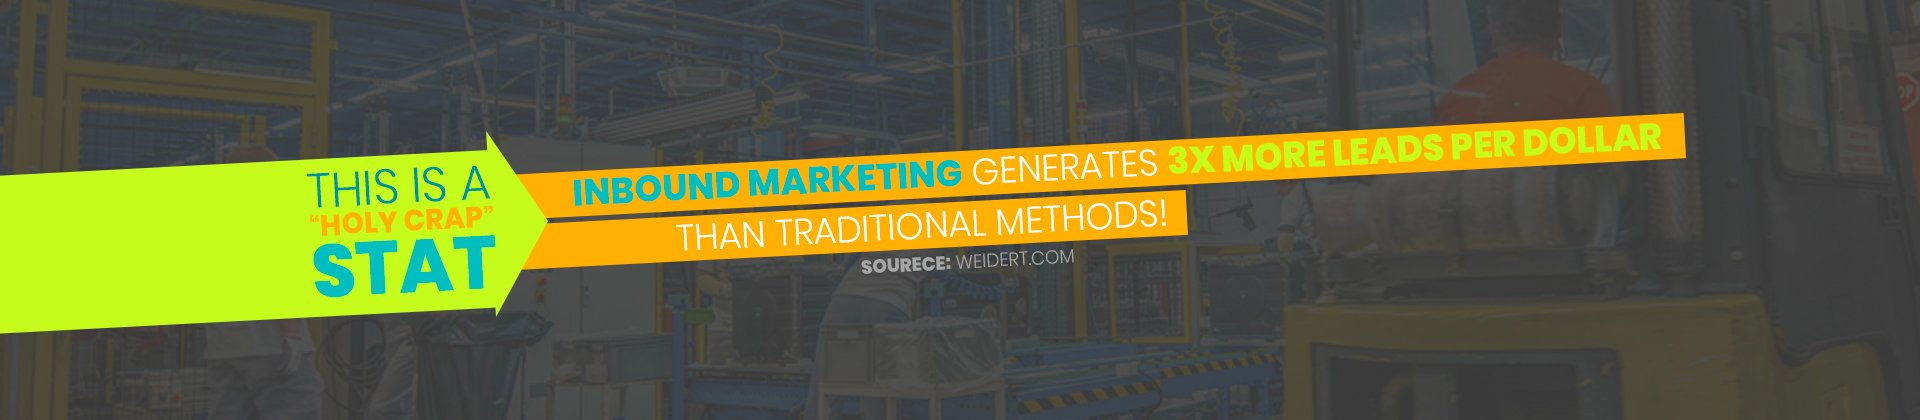 Inbound marketing generates 3x more leads per dollar than traditional methods!